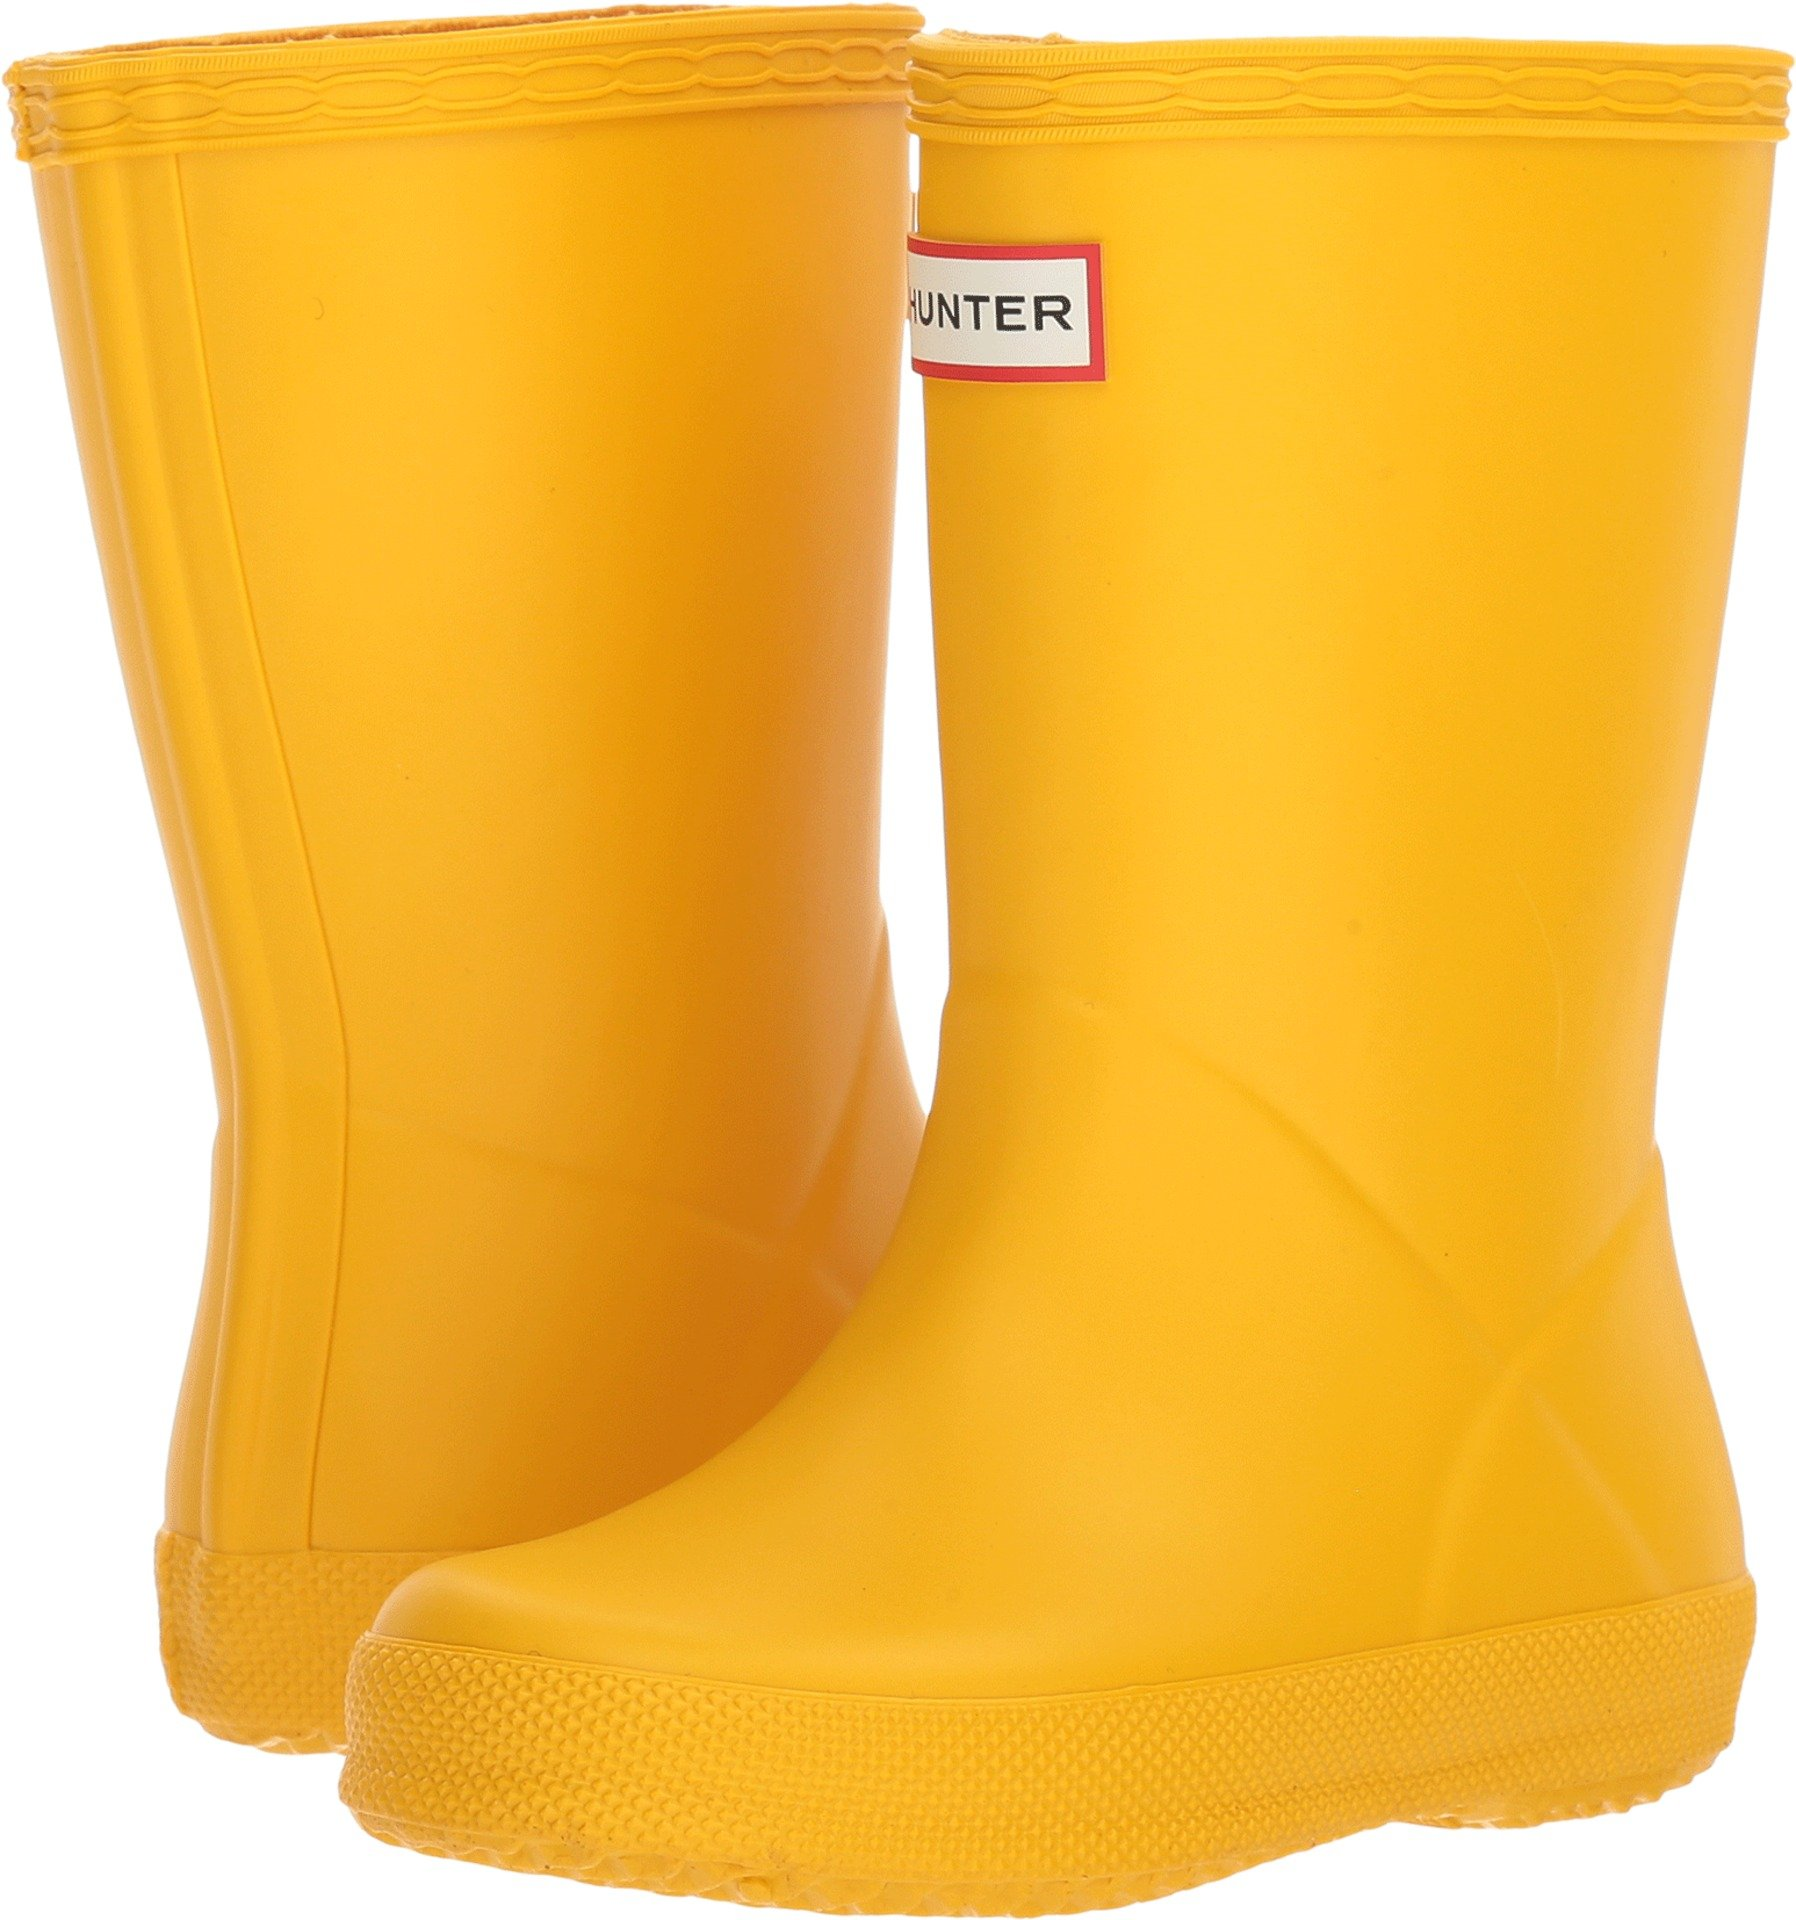 Hunters Boots First Classic Boot - Toddlers' Yellow, 12.0